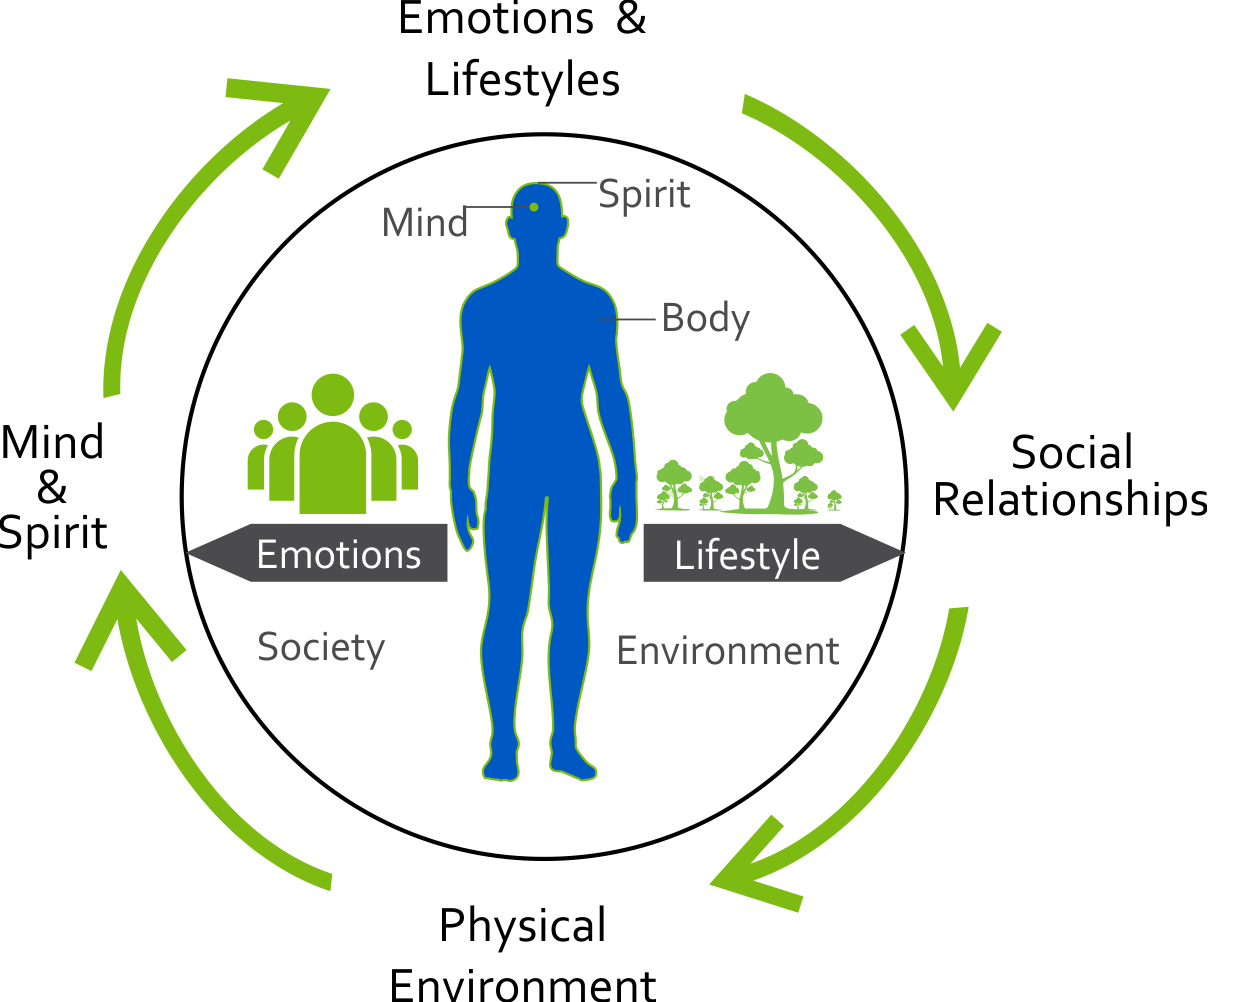 life-cycle image